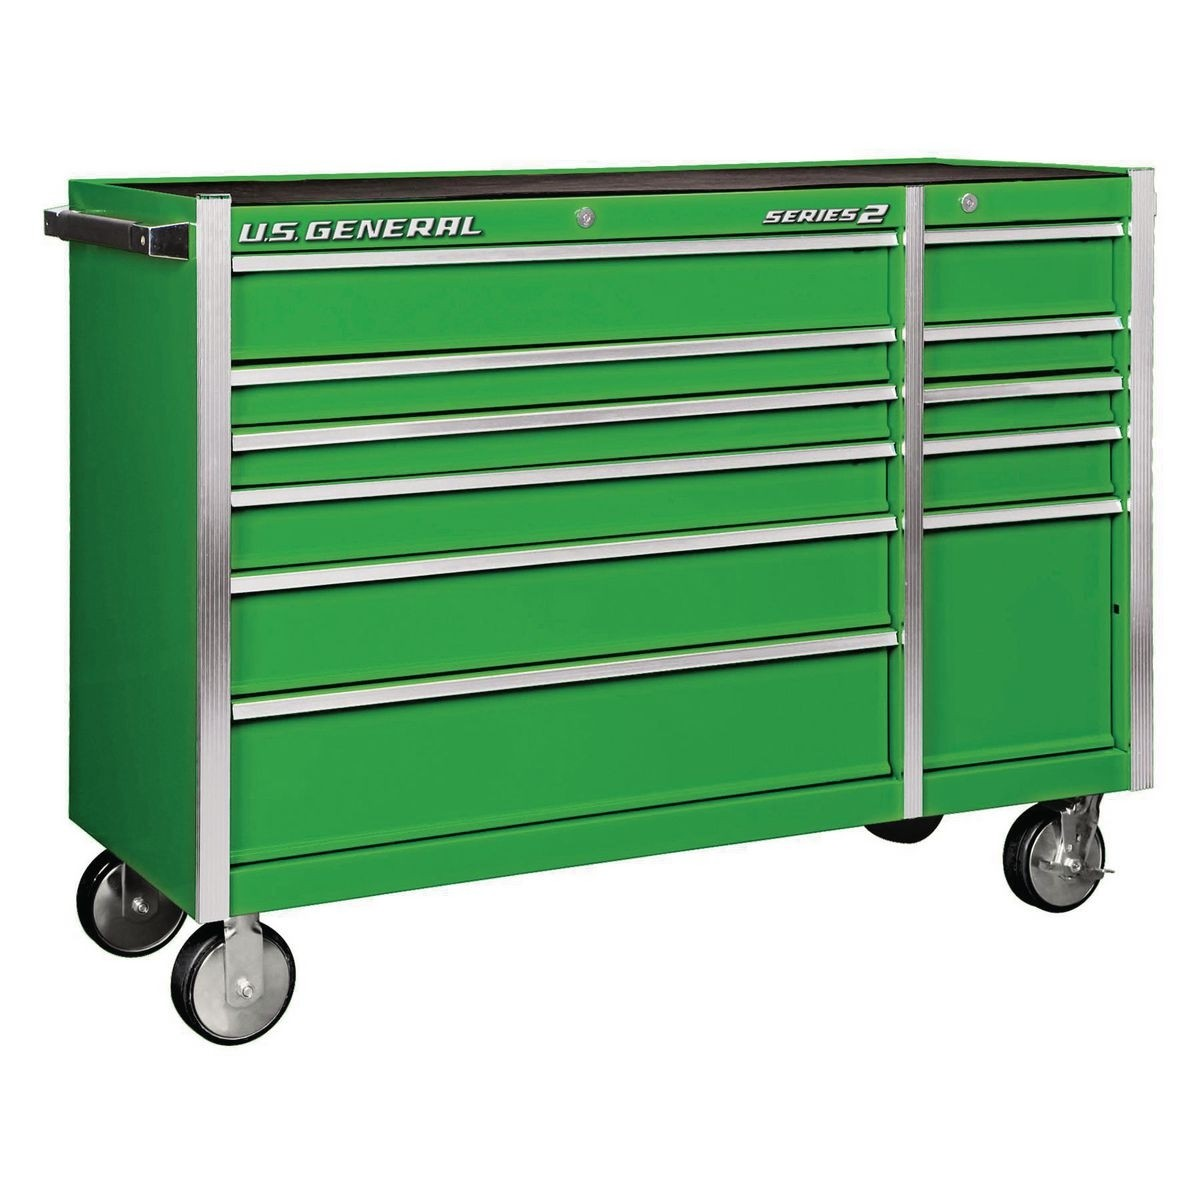 U.S. GENERAL 56 In. Double Bank Roller Cabinet – Green – Item 56110